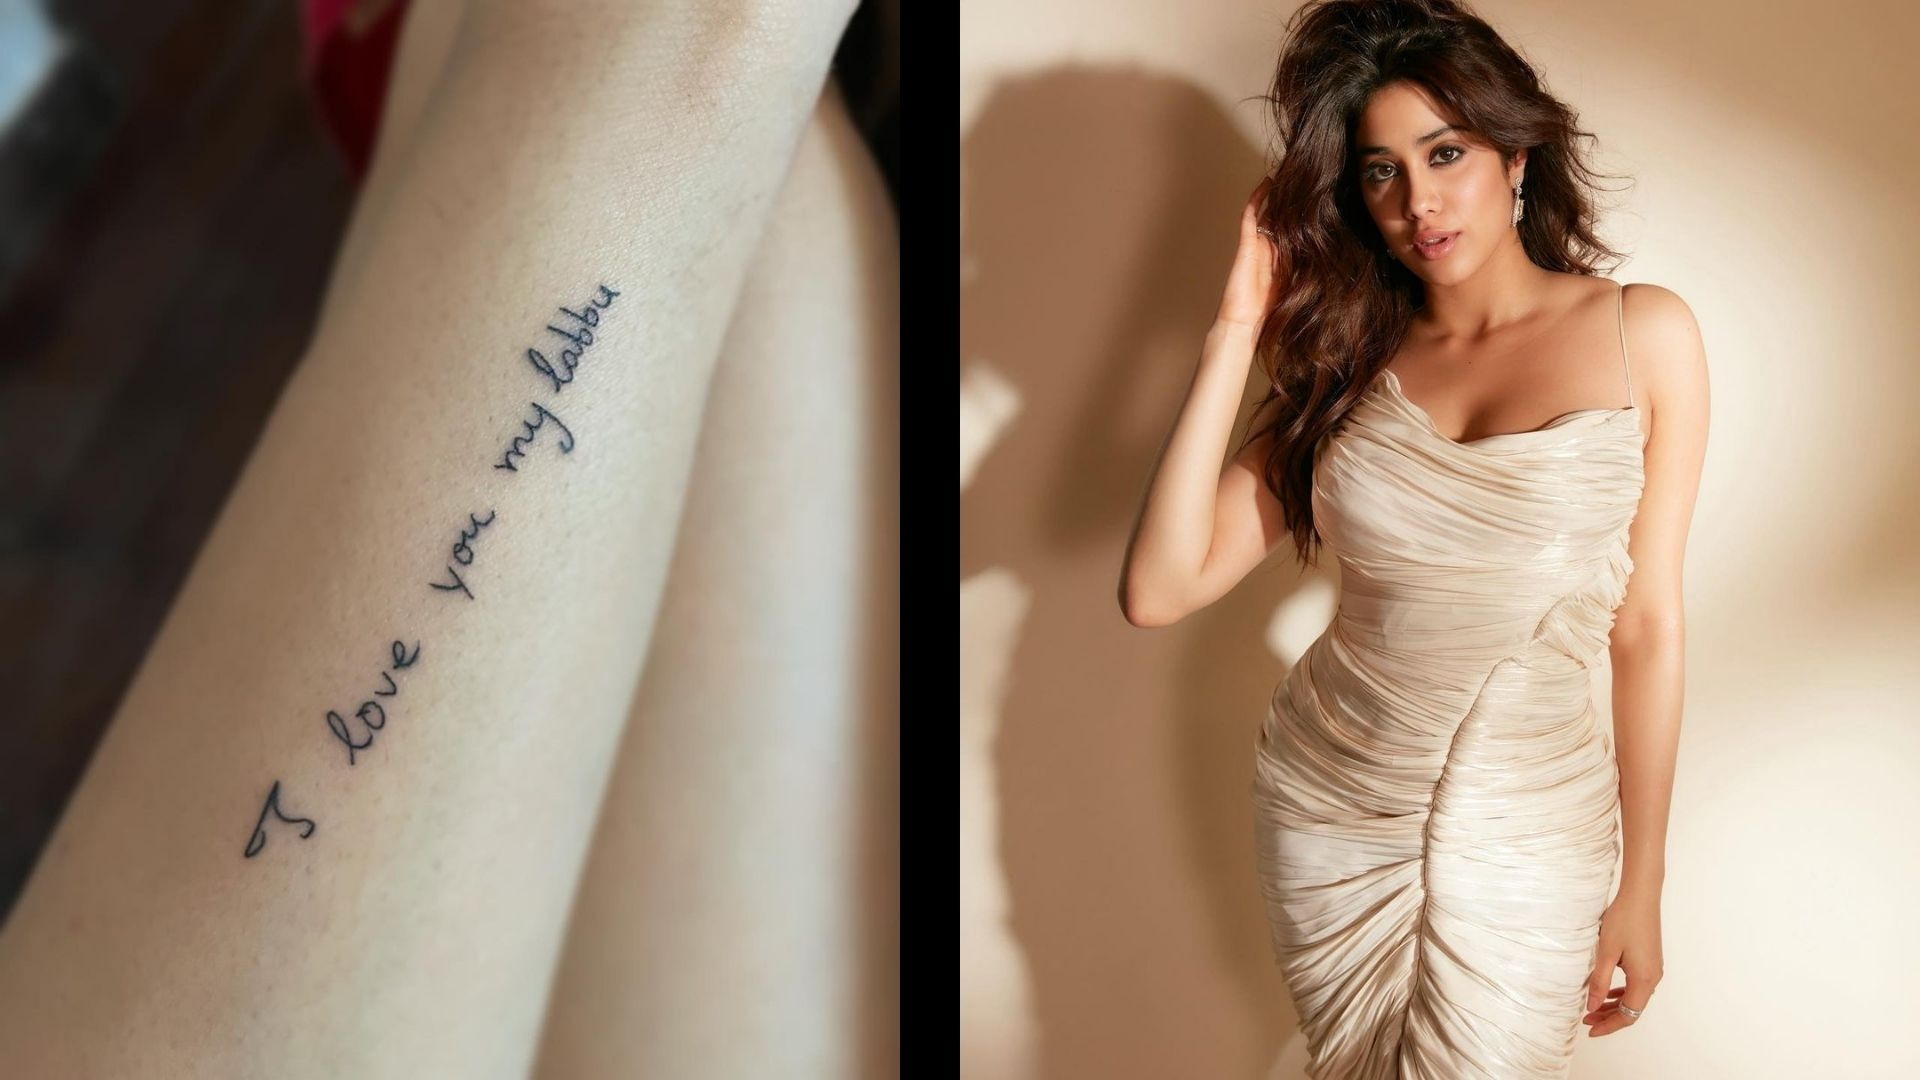 Janhvi Kapoor Gets Mom Sridevi's Handwritten Note Inked On Her Arm; Her Chanting Govinda In This Hilarious Video Will Make You Go ROFL